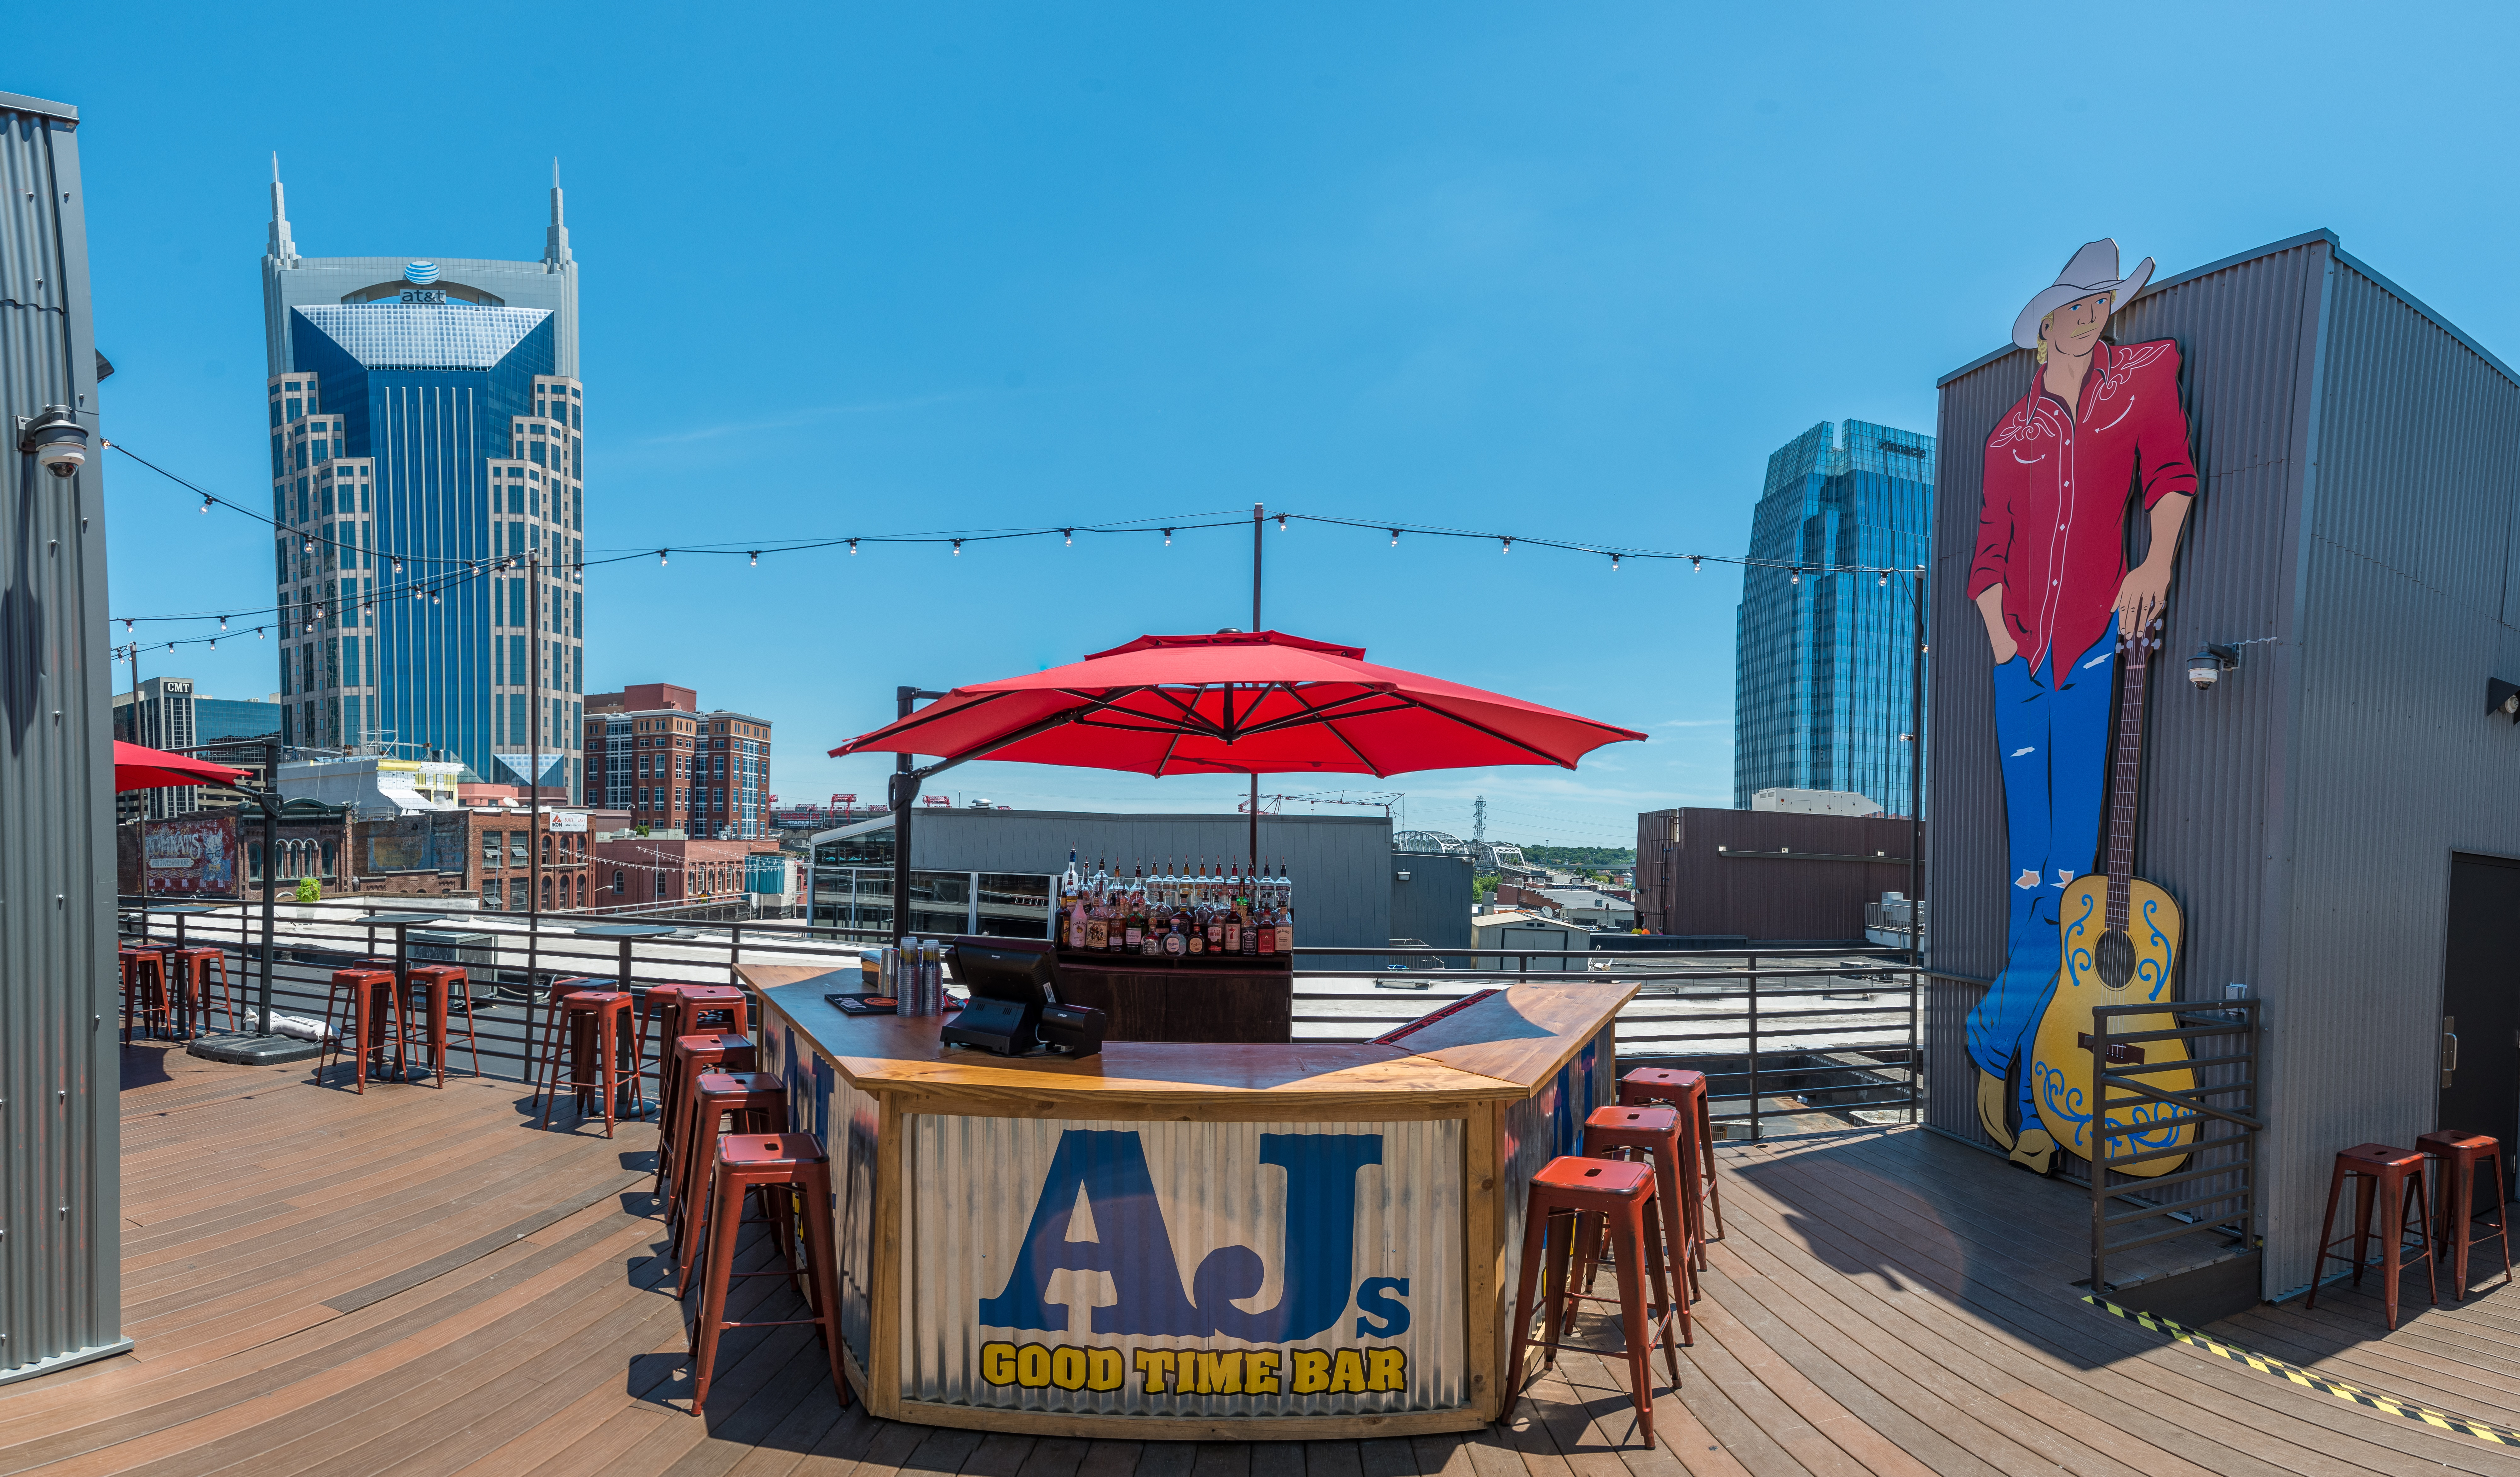 Alan Jackson's AJ's Good Time Bar (rooftop); Photo courtesy of Shore Fire Media